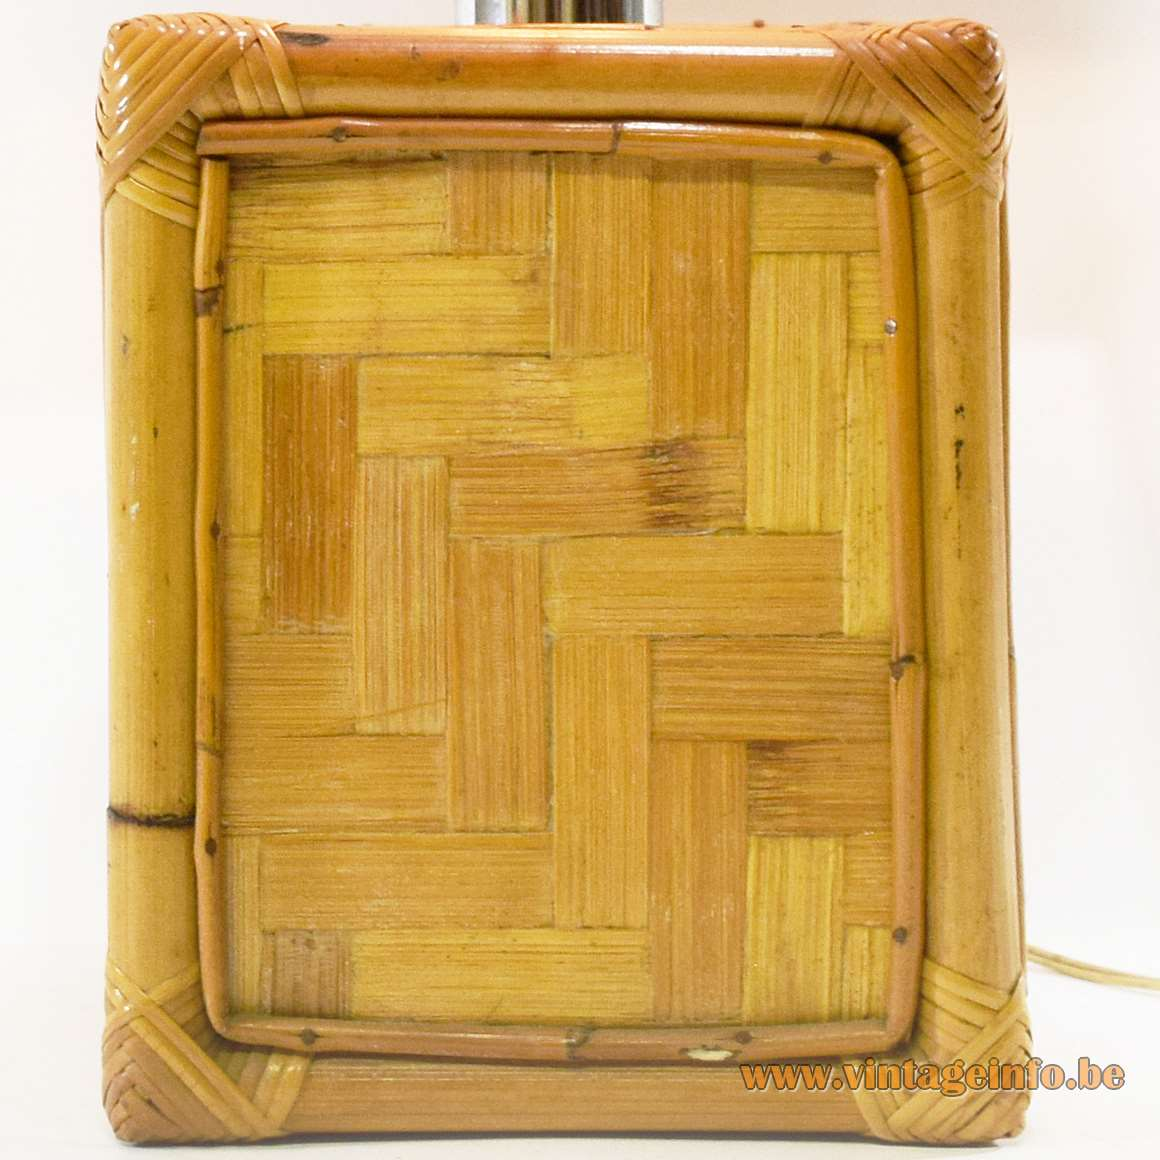 1960s Cube Bamboo Table Lamp - Bamboo base